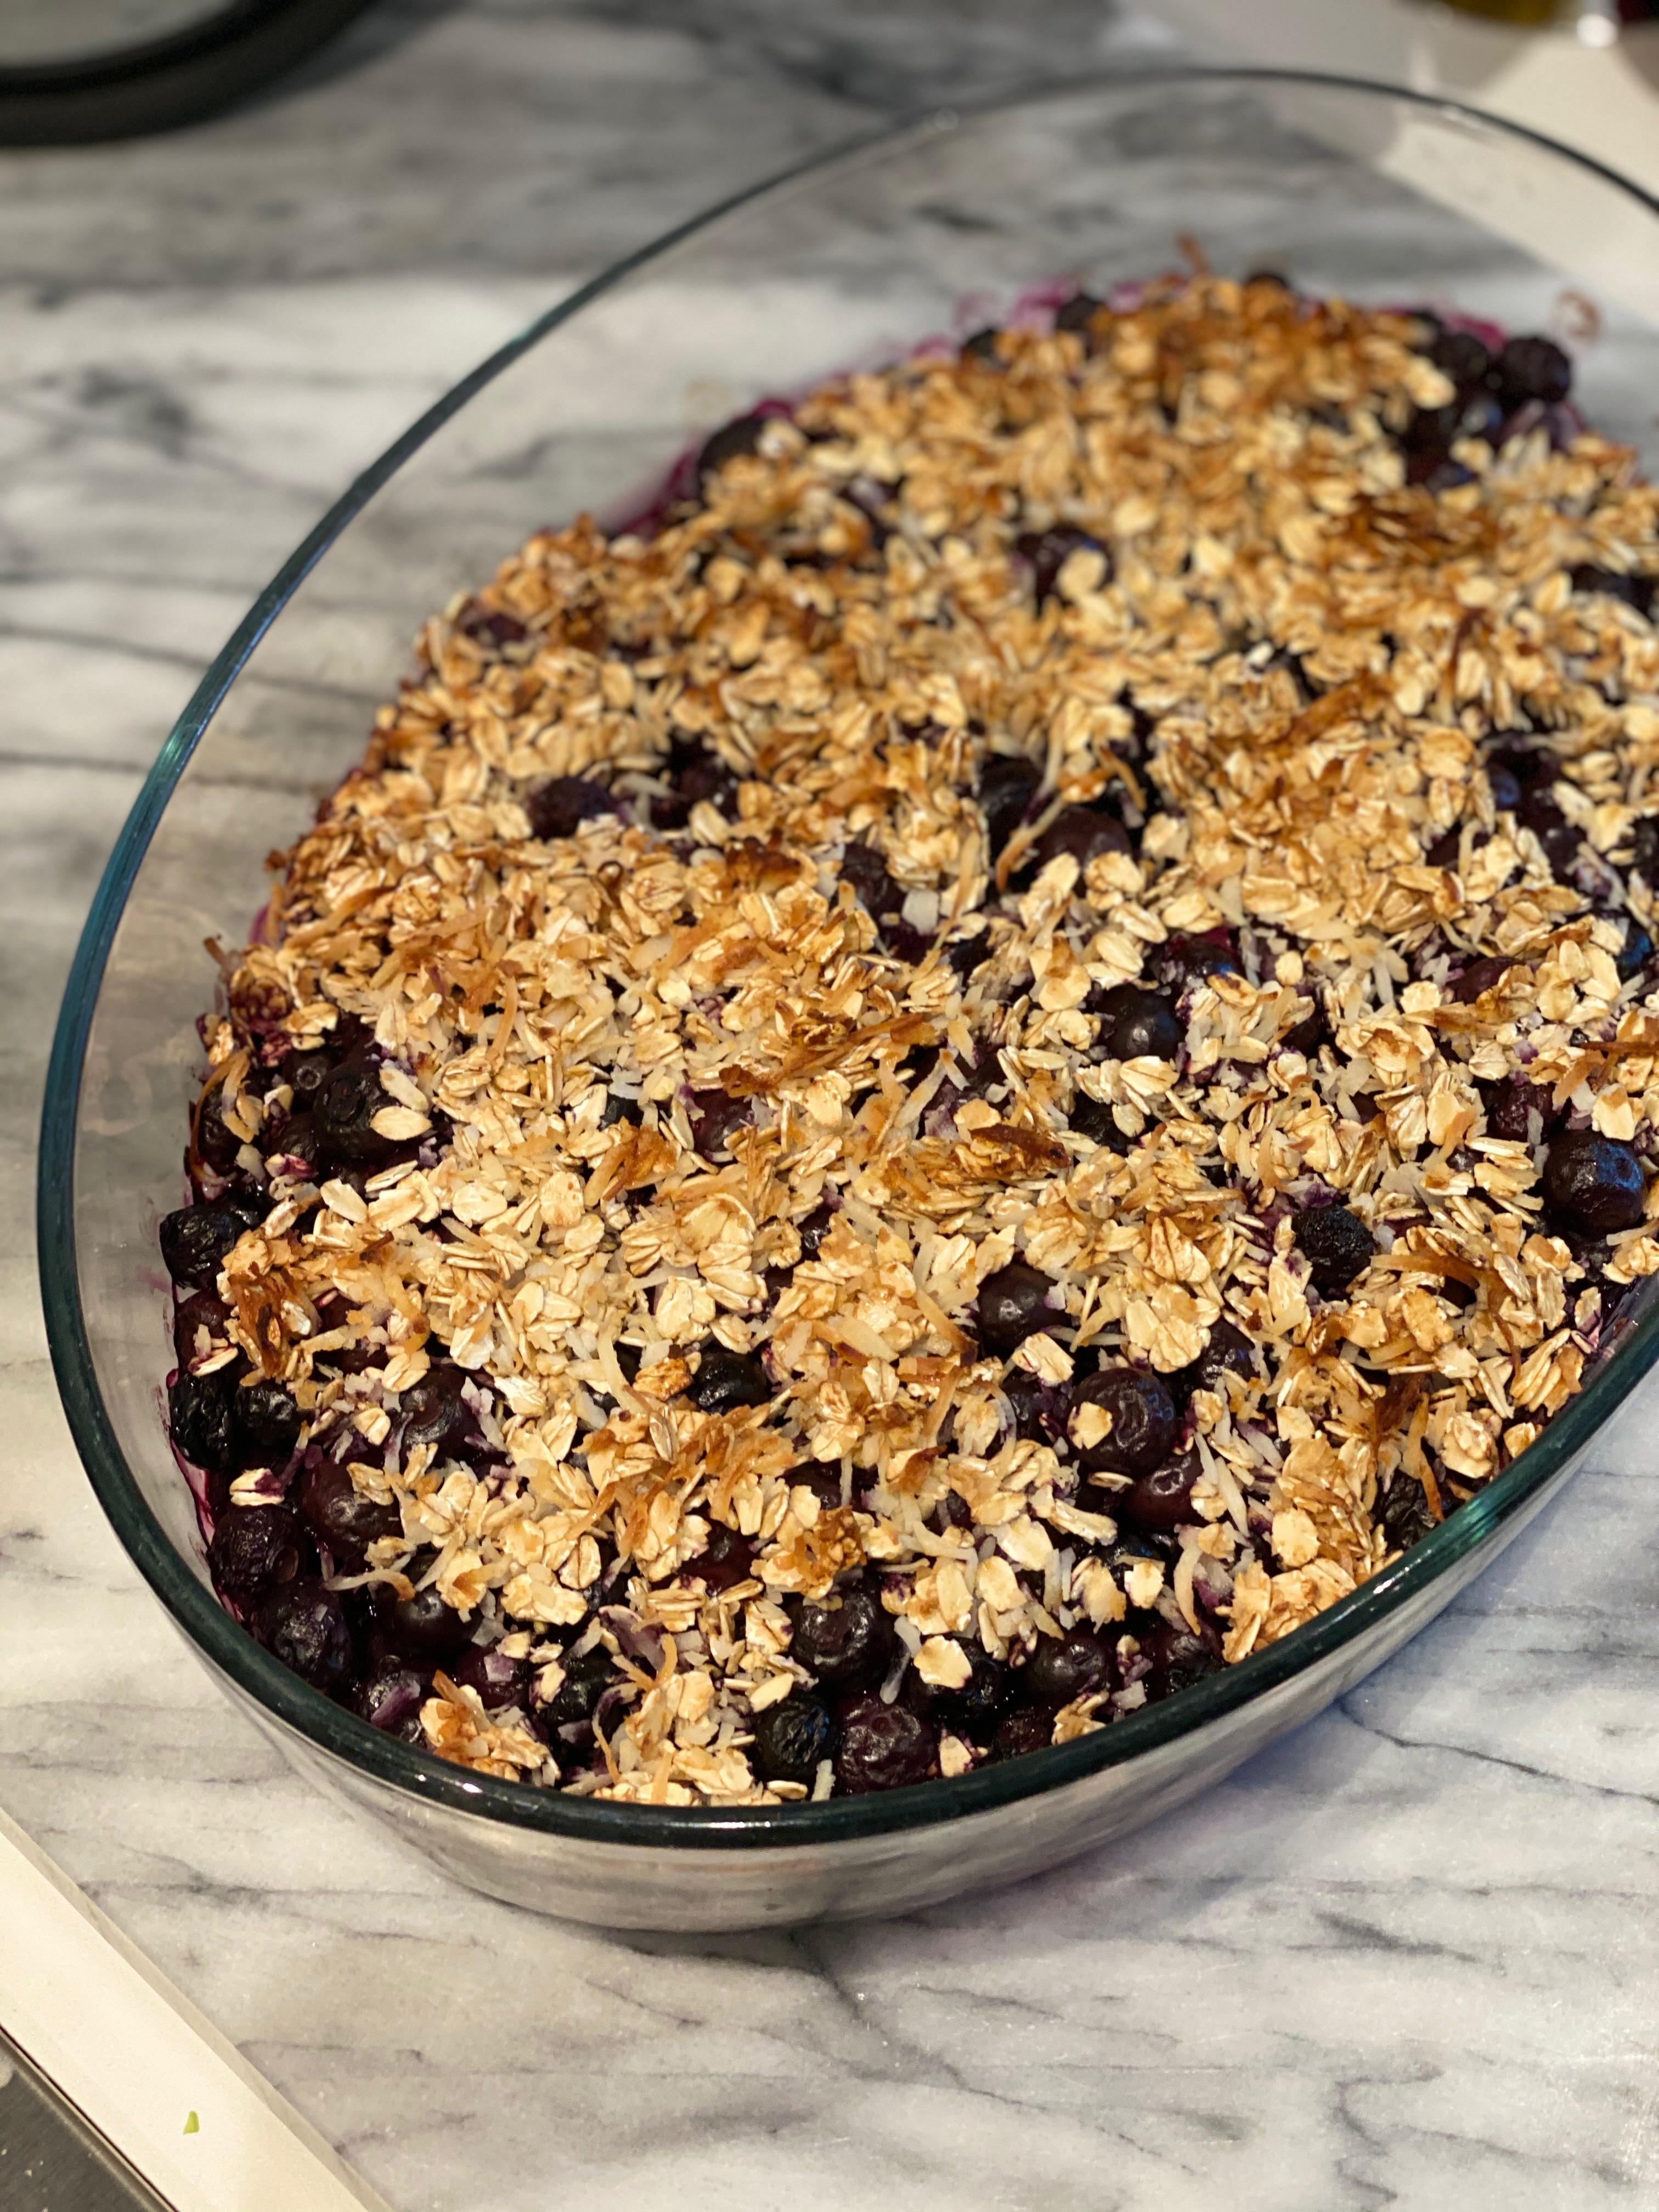 30 Minute Blueberry Crumble